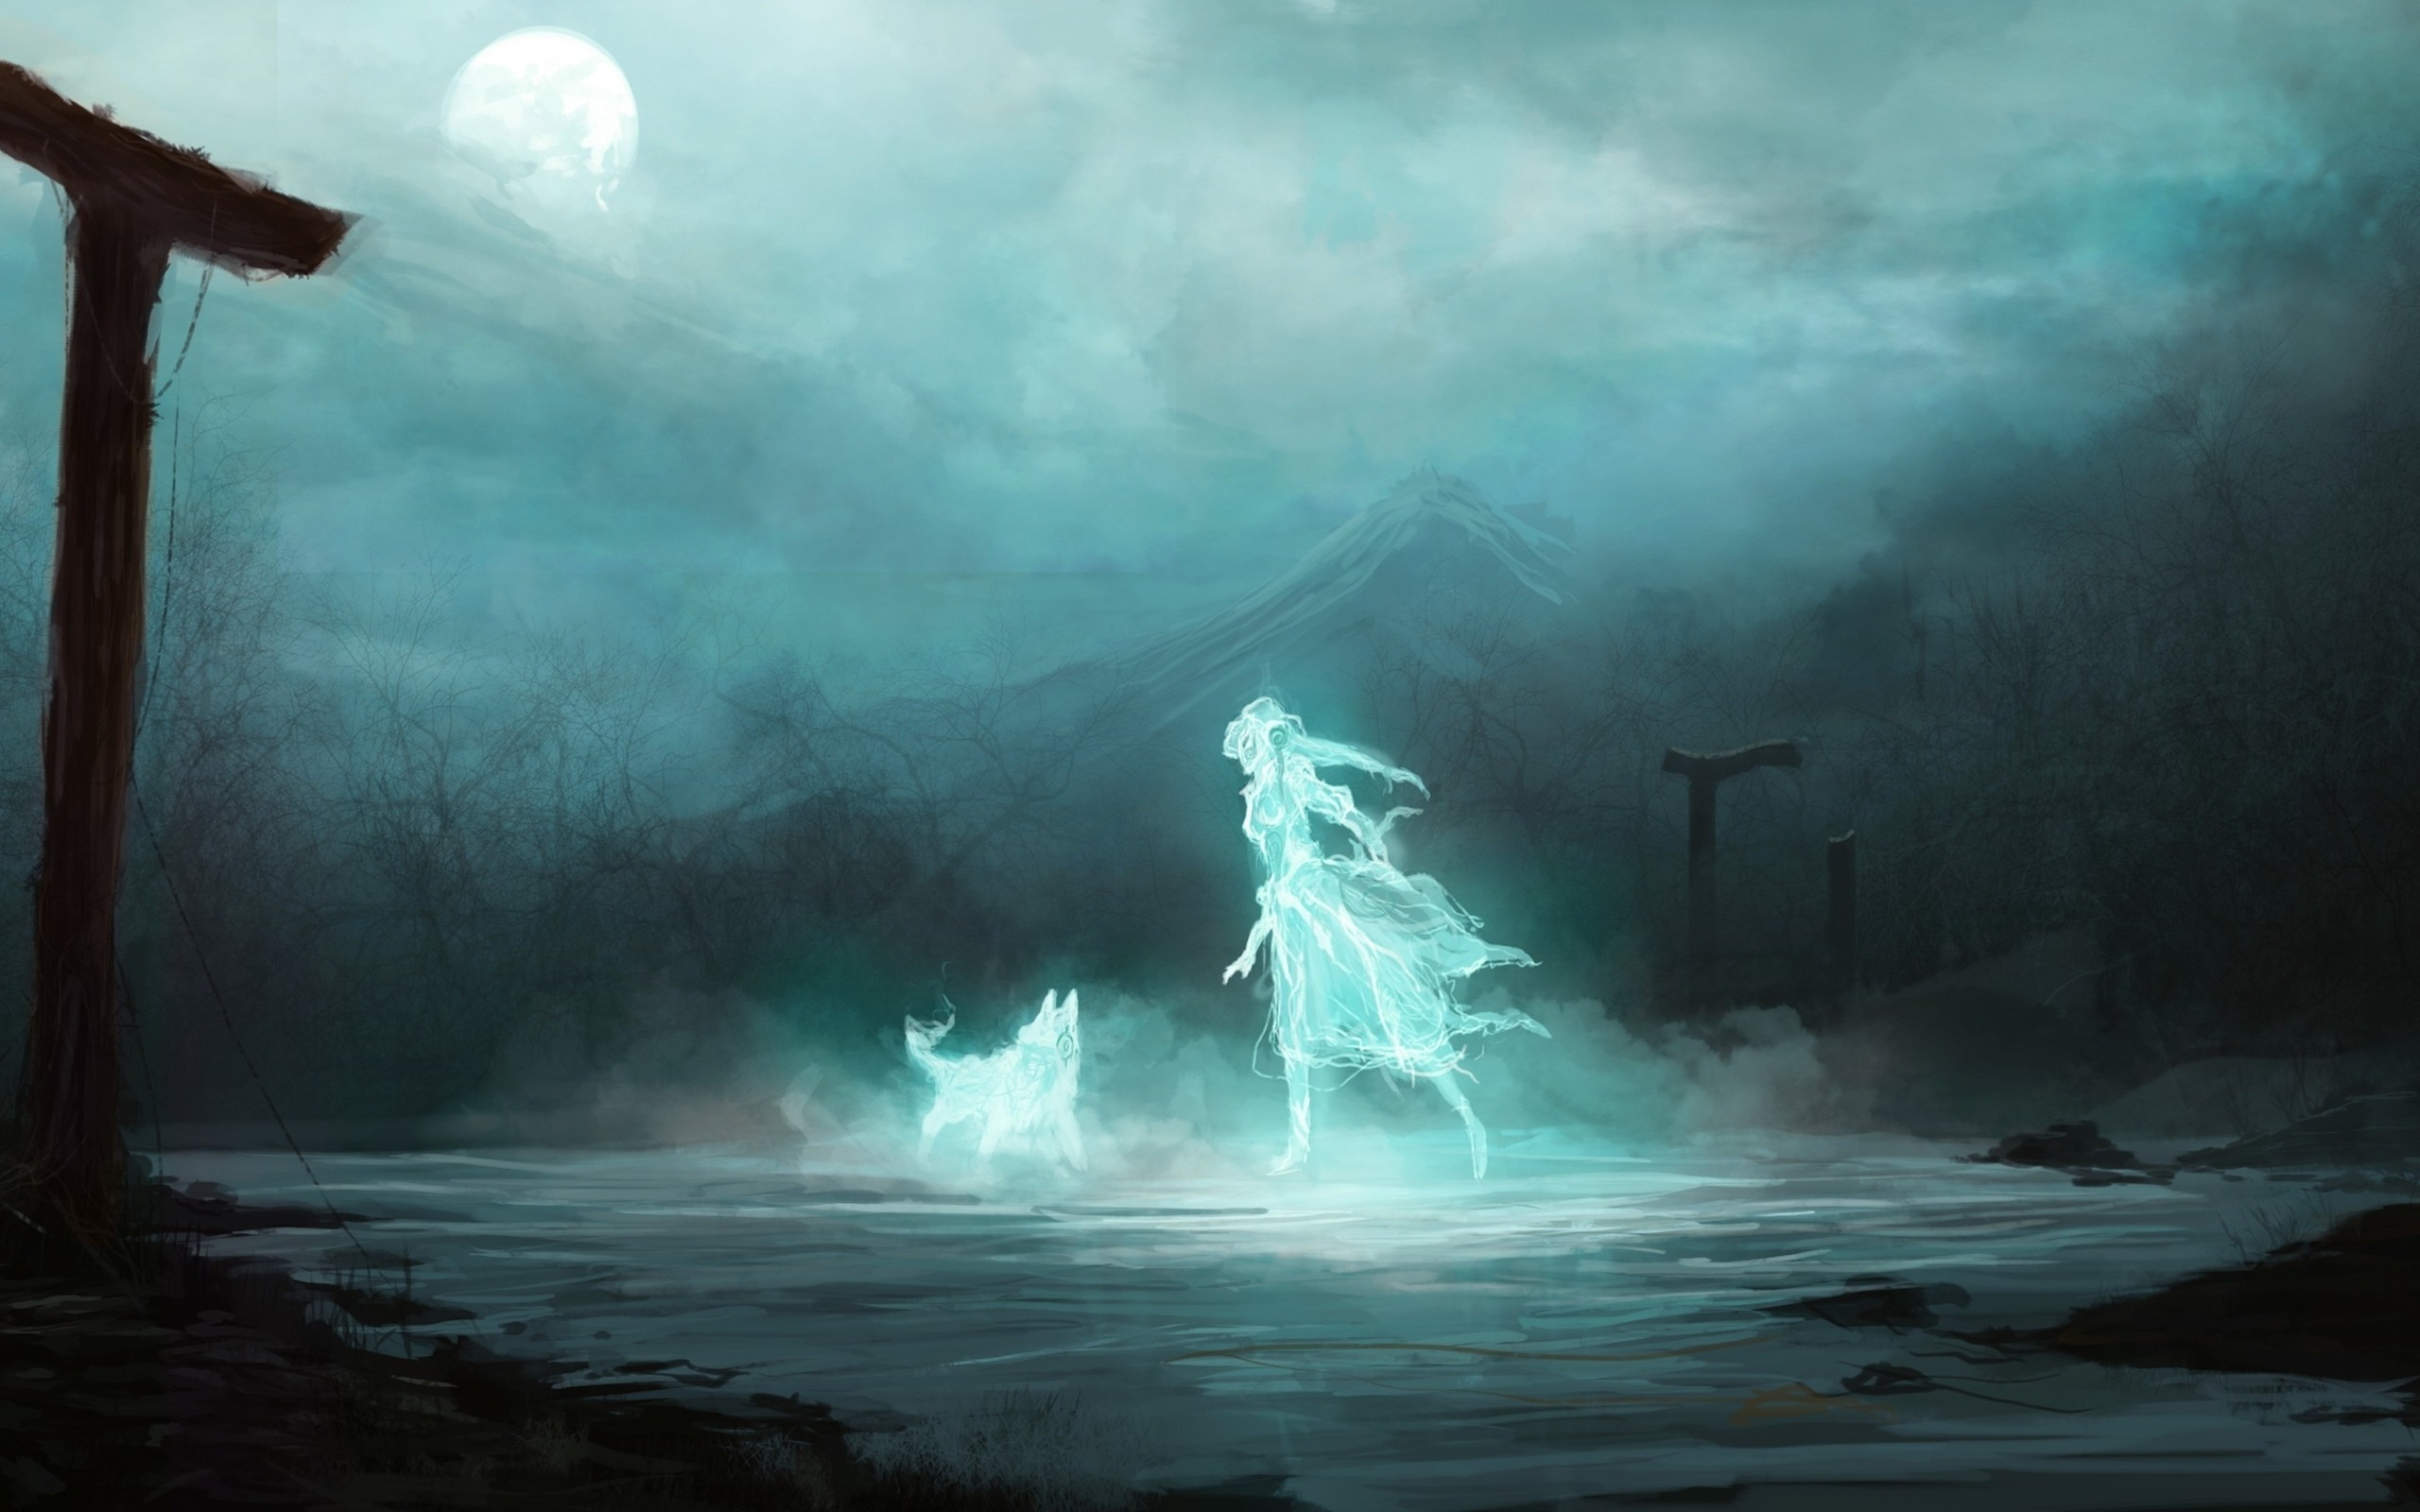 Ghost hd wallpaper background image 2560x1600 id - Ghost wallpapers for desktop hd ...